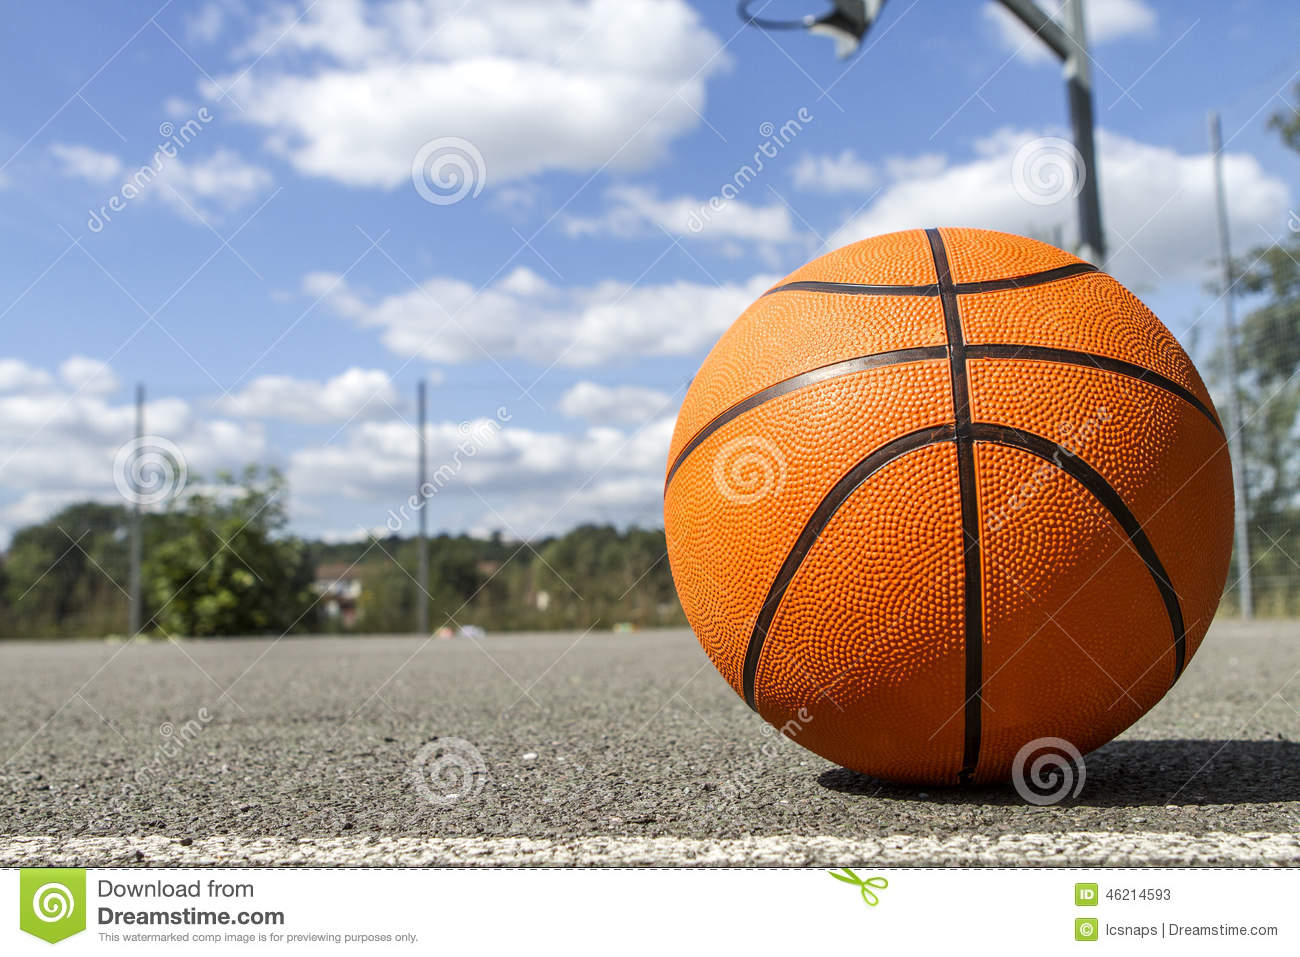 Basketball On An Outdoor Court On A Bright Sunny Day Stock ...